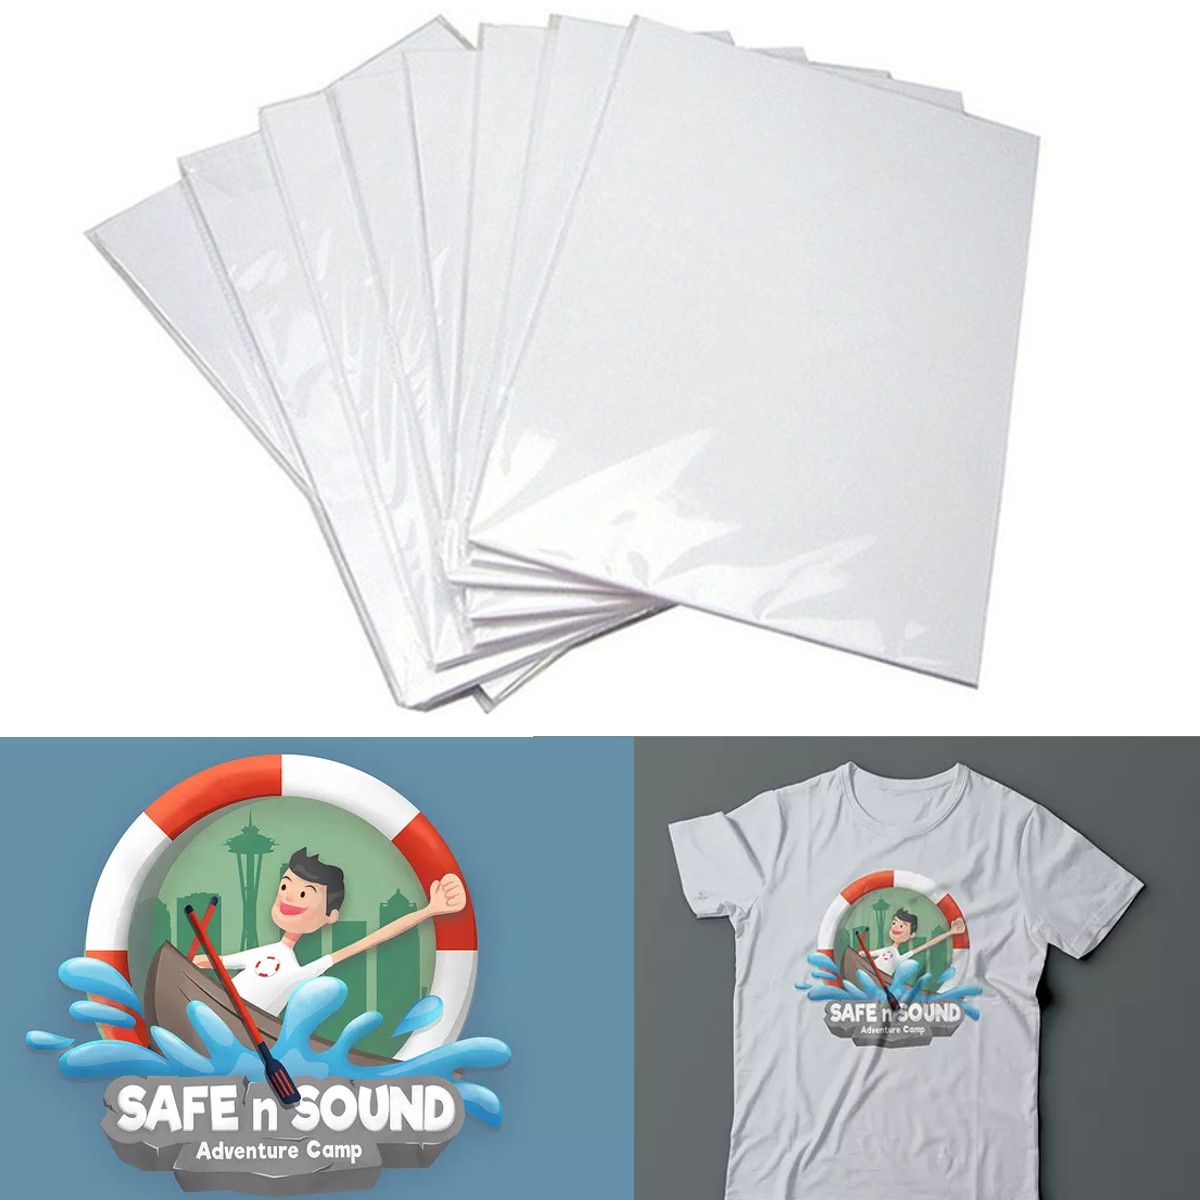 50/100Pcs Laser Heat Transfer Paper A3/A4 Self Weeding Paper For T Shirt Thermal Transfers Hollow Papers DIY Craft T-shirt New